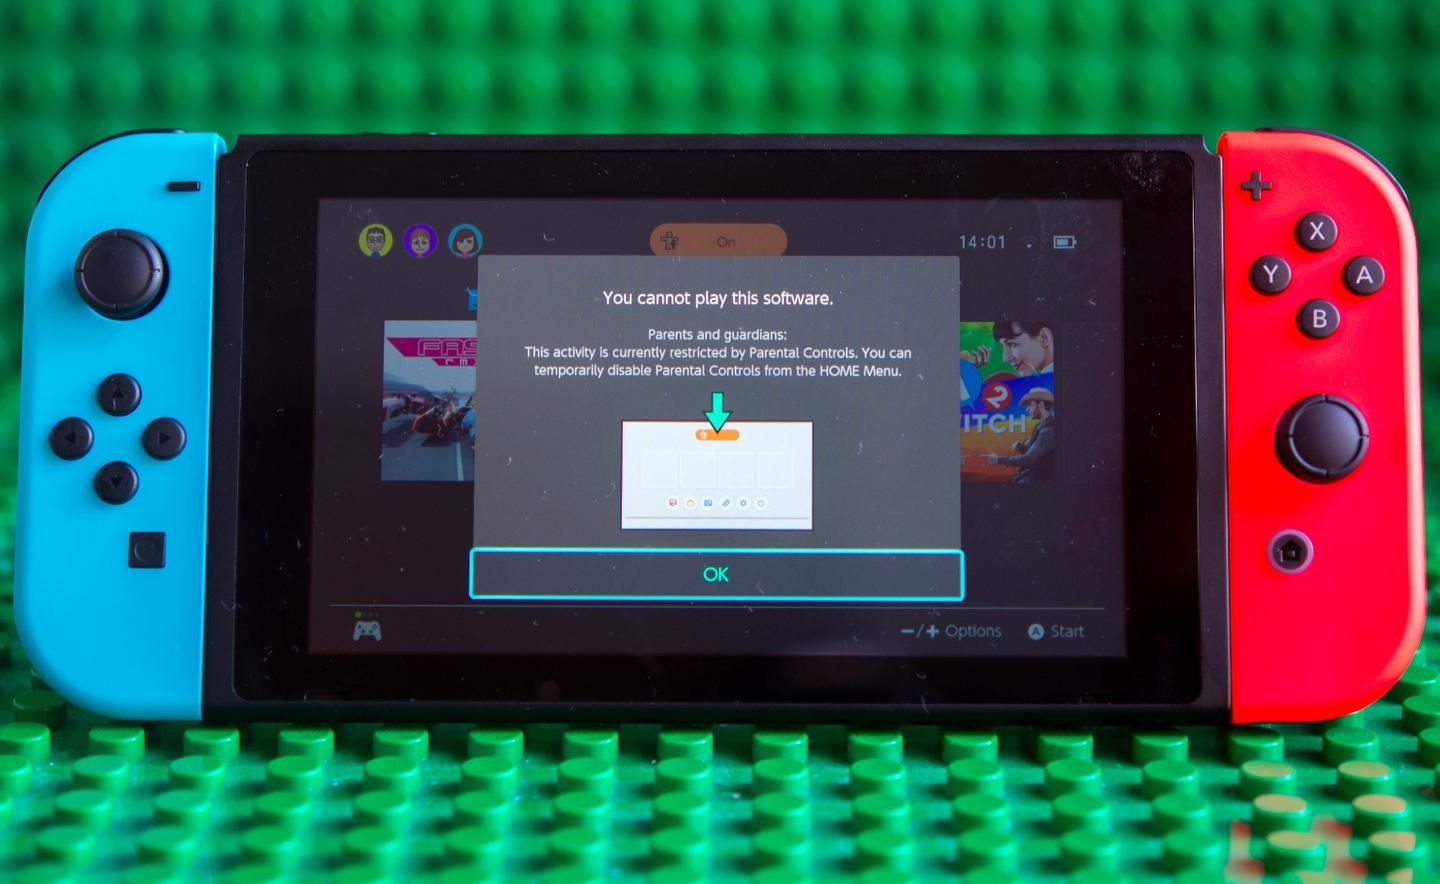 How to use parental controls on the Nintendo Switch